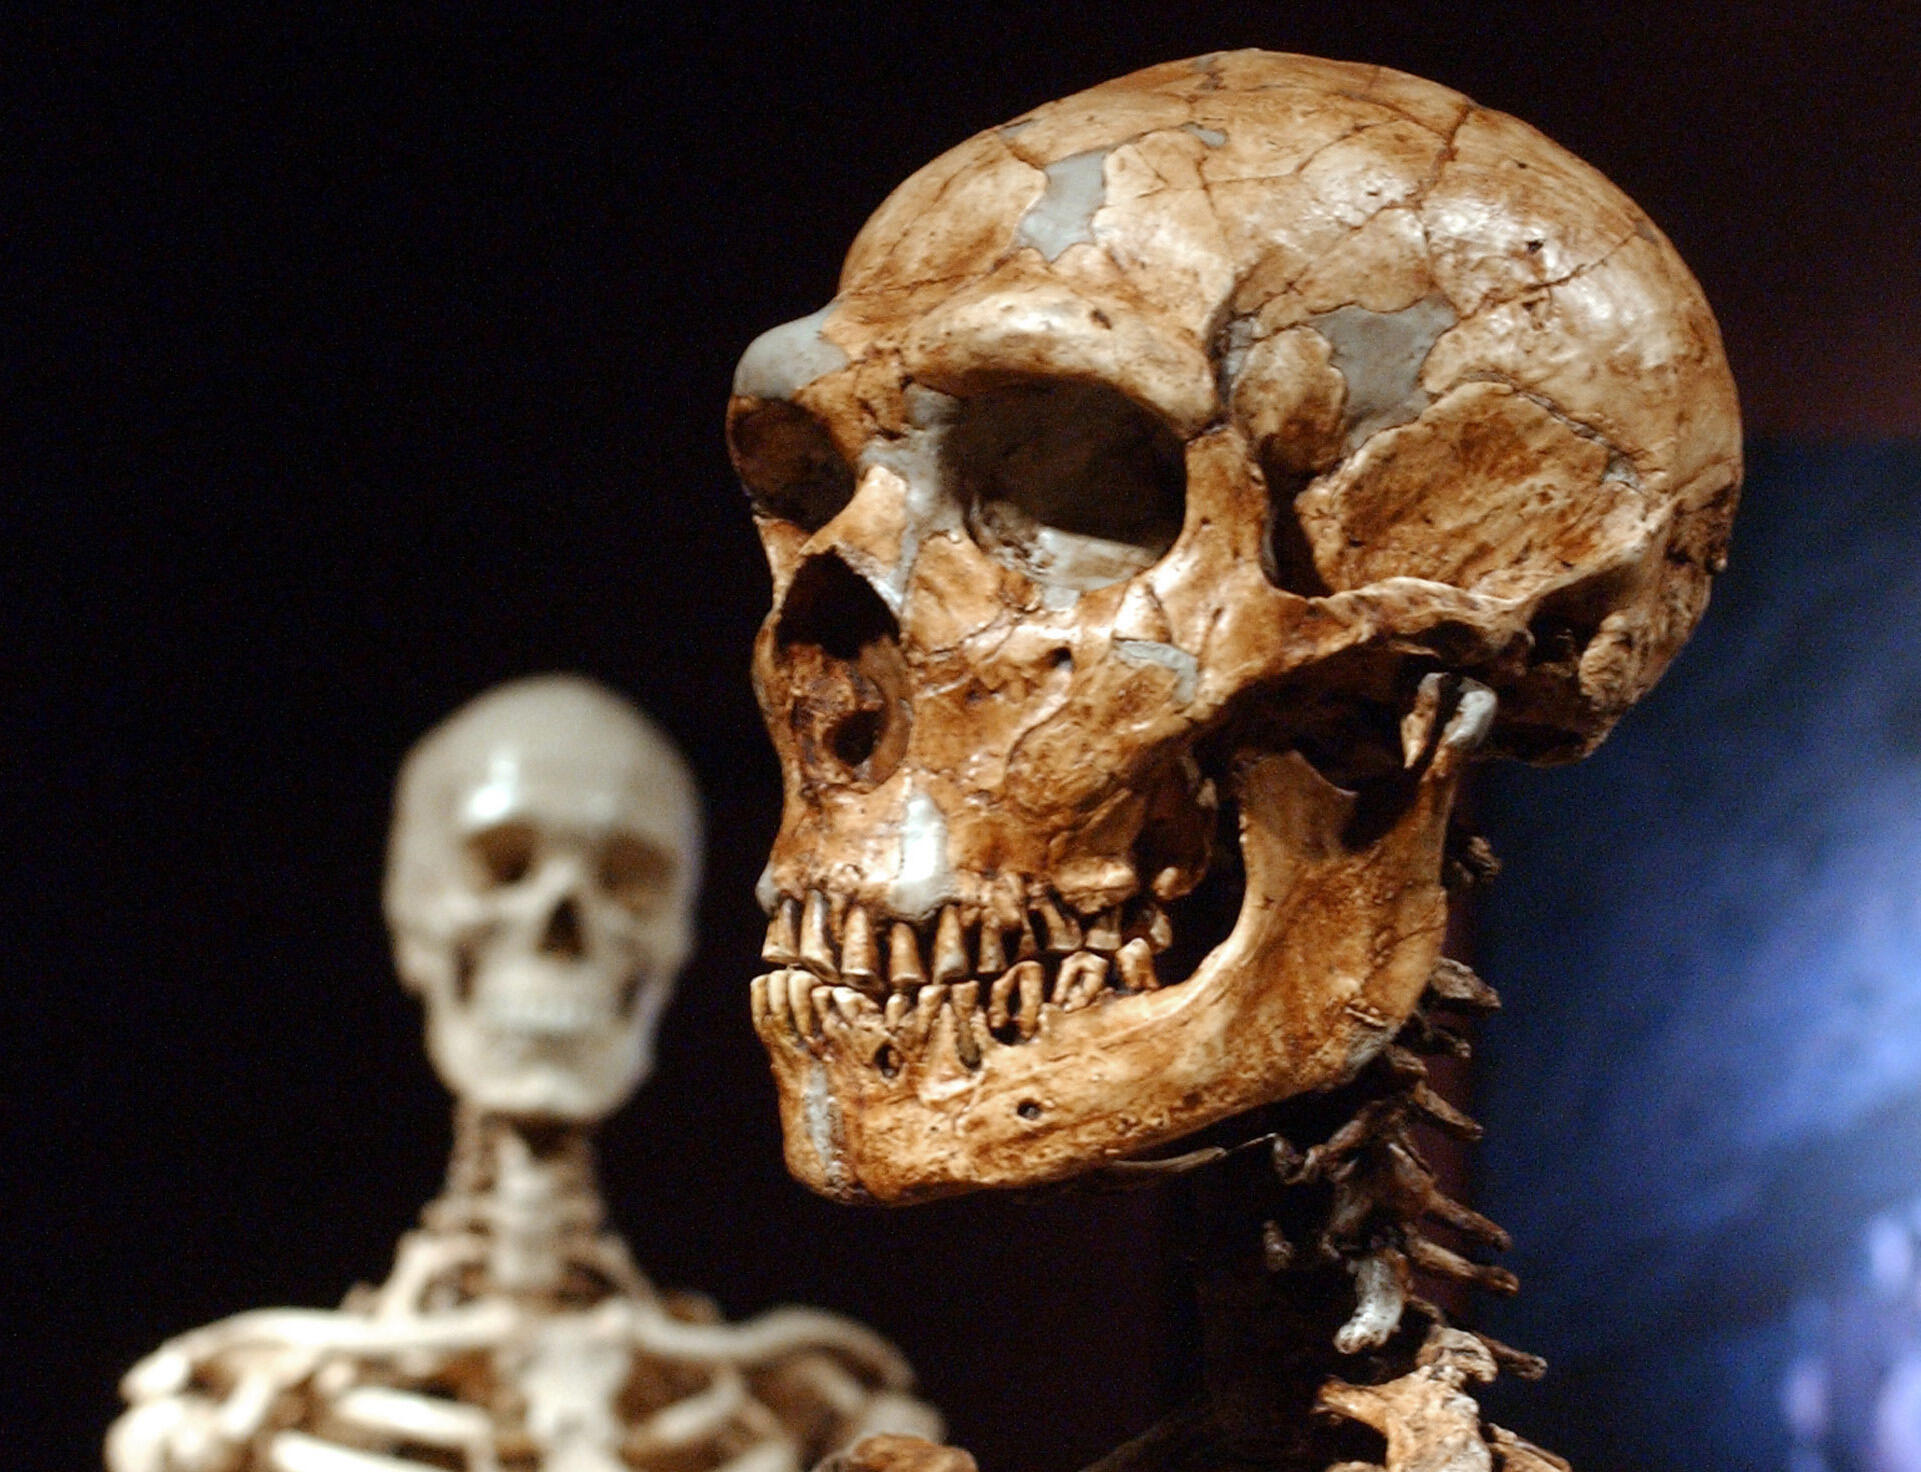 This Jan. 8, 2003 file photo shows a reconstructed Neanderthal skeleton, right, and a modern human version of a skeleton, left, on display at the Museum of Natural History in New York.  Humans and Neanderthals may have coexisted in Europe for more than 5,000 years, providing ample time for the two species to meet and mix, according to new research. Using new carbon dating techniques and mathematical models, the researchers examined about 200 samples found at 40 sites from Spain to Russia.